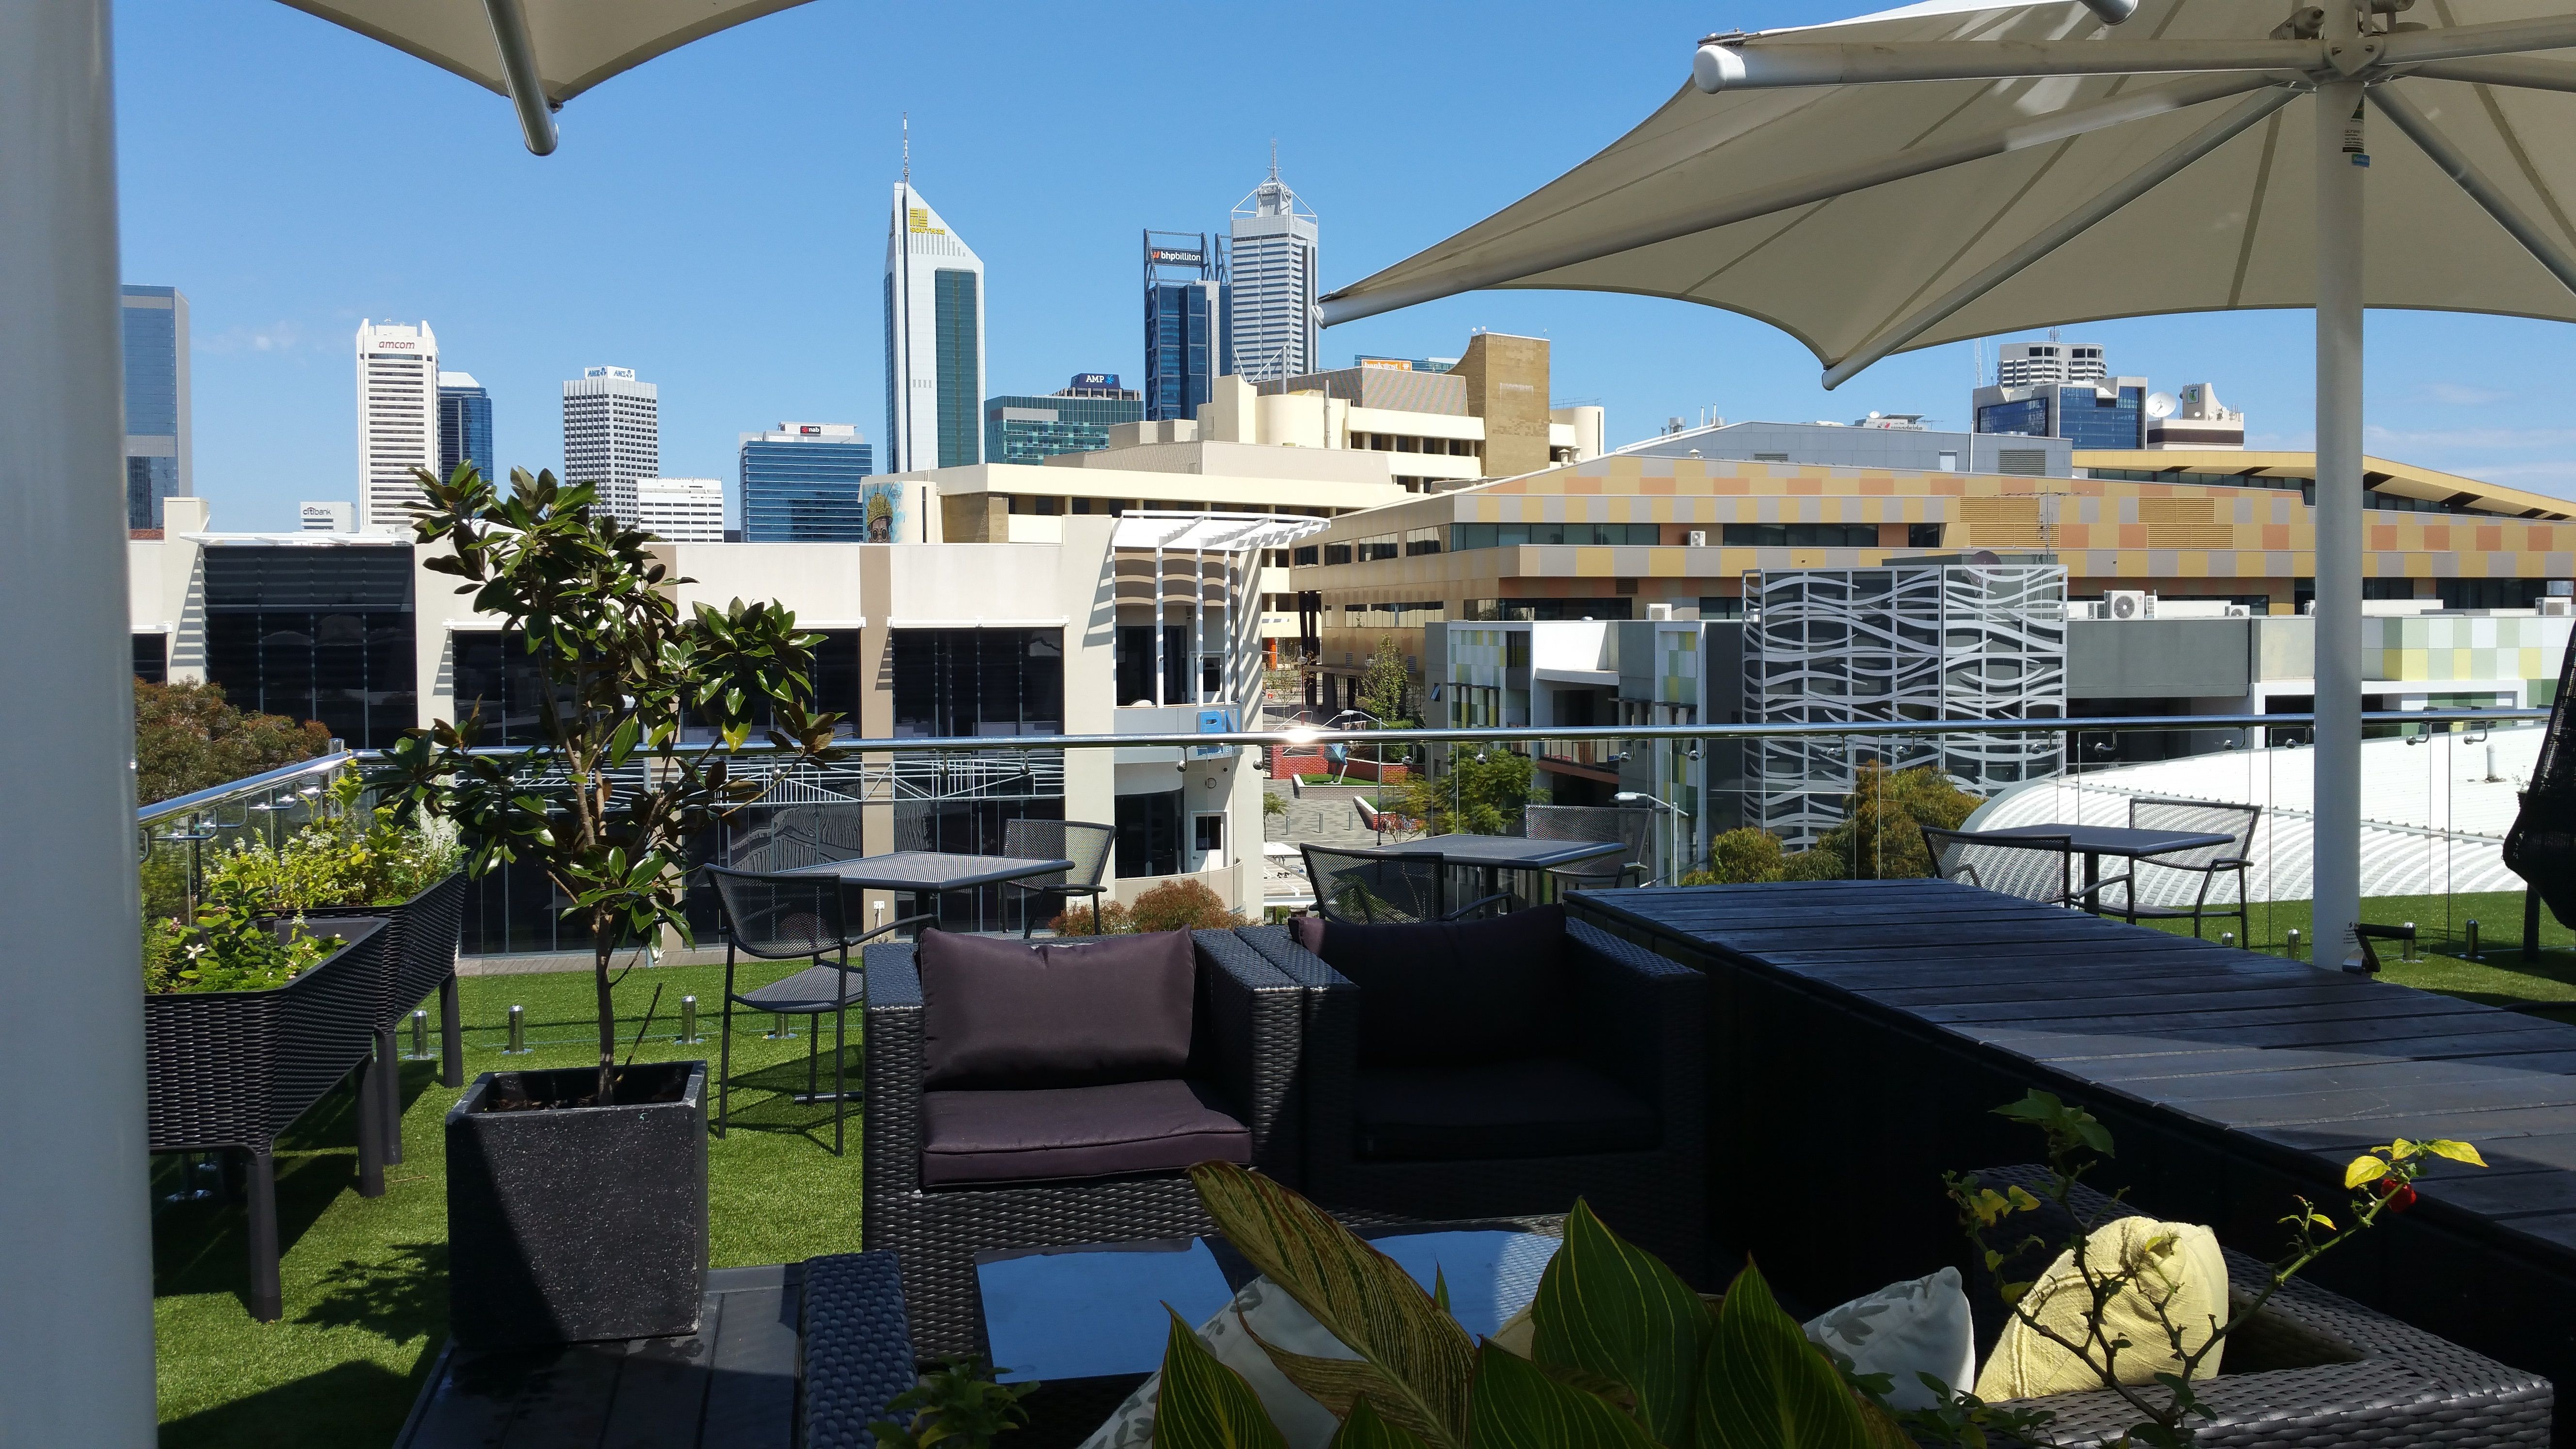 Beautiful Morning Perth WA Relaxing and Enjoy Patio